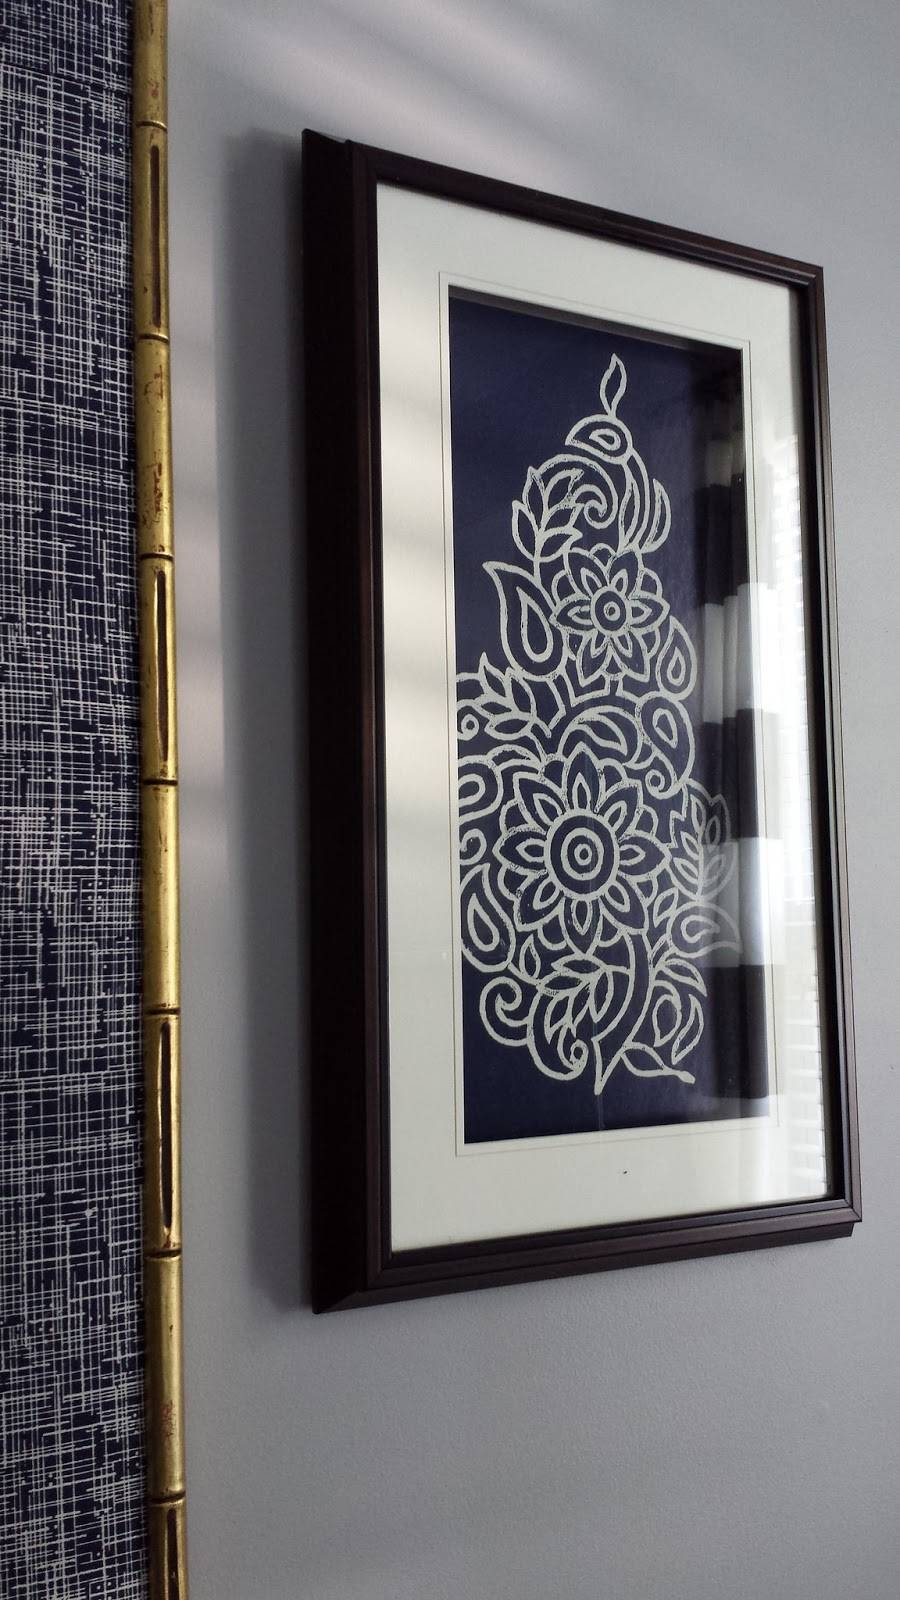 Focal Point Styling: Diy Indigo Wall Art With Framed Fabric Inside Most Up To Date Framed Fabric Wall Art (View 6 of 20)